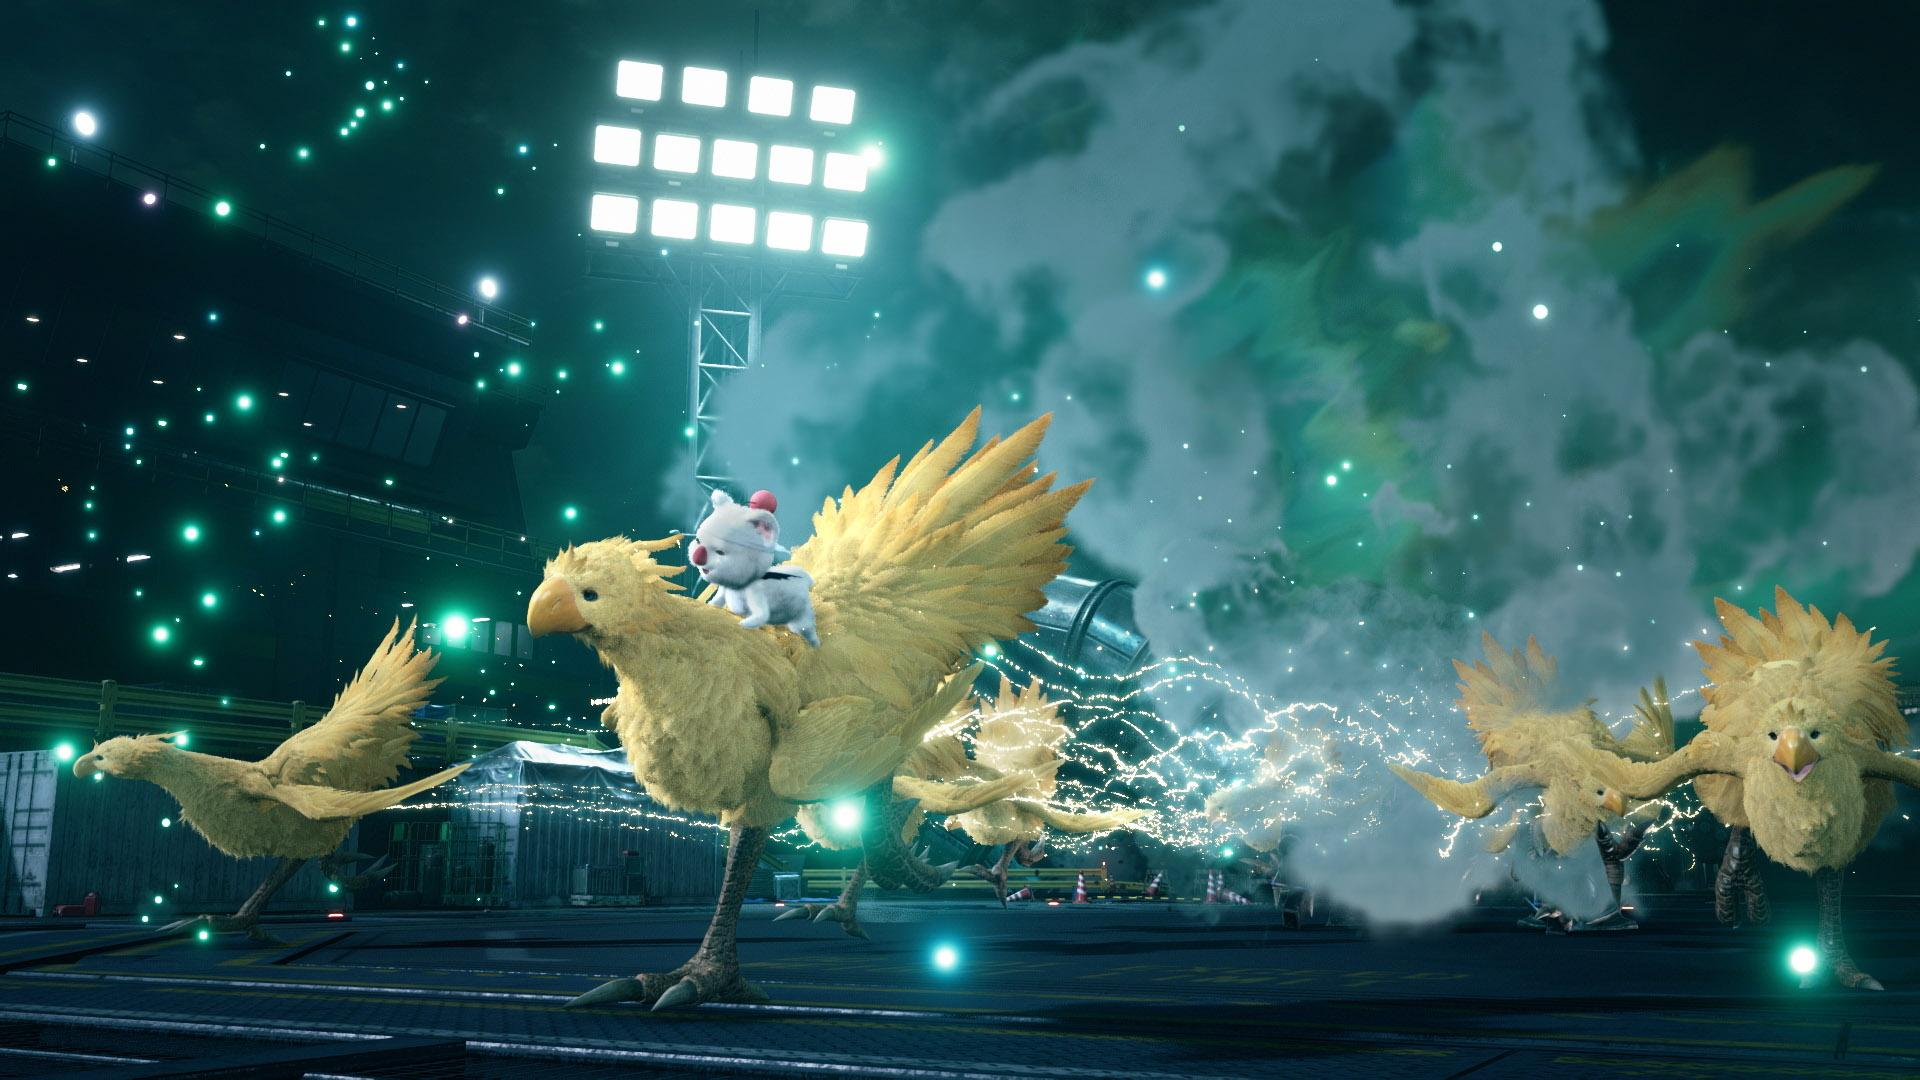 """Final Fantasy 7 Remake"""": The new version of """"Final Fantasy 7 Remake"""" features newly-designed moogles and chocobos."""